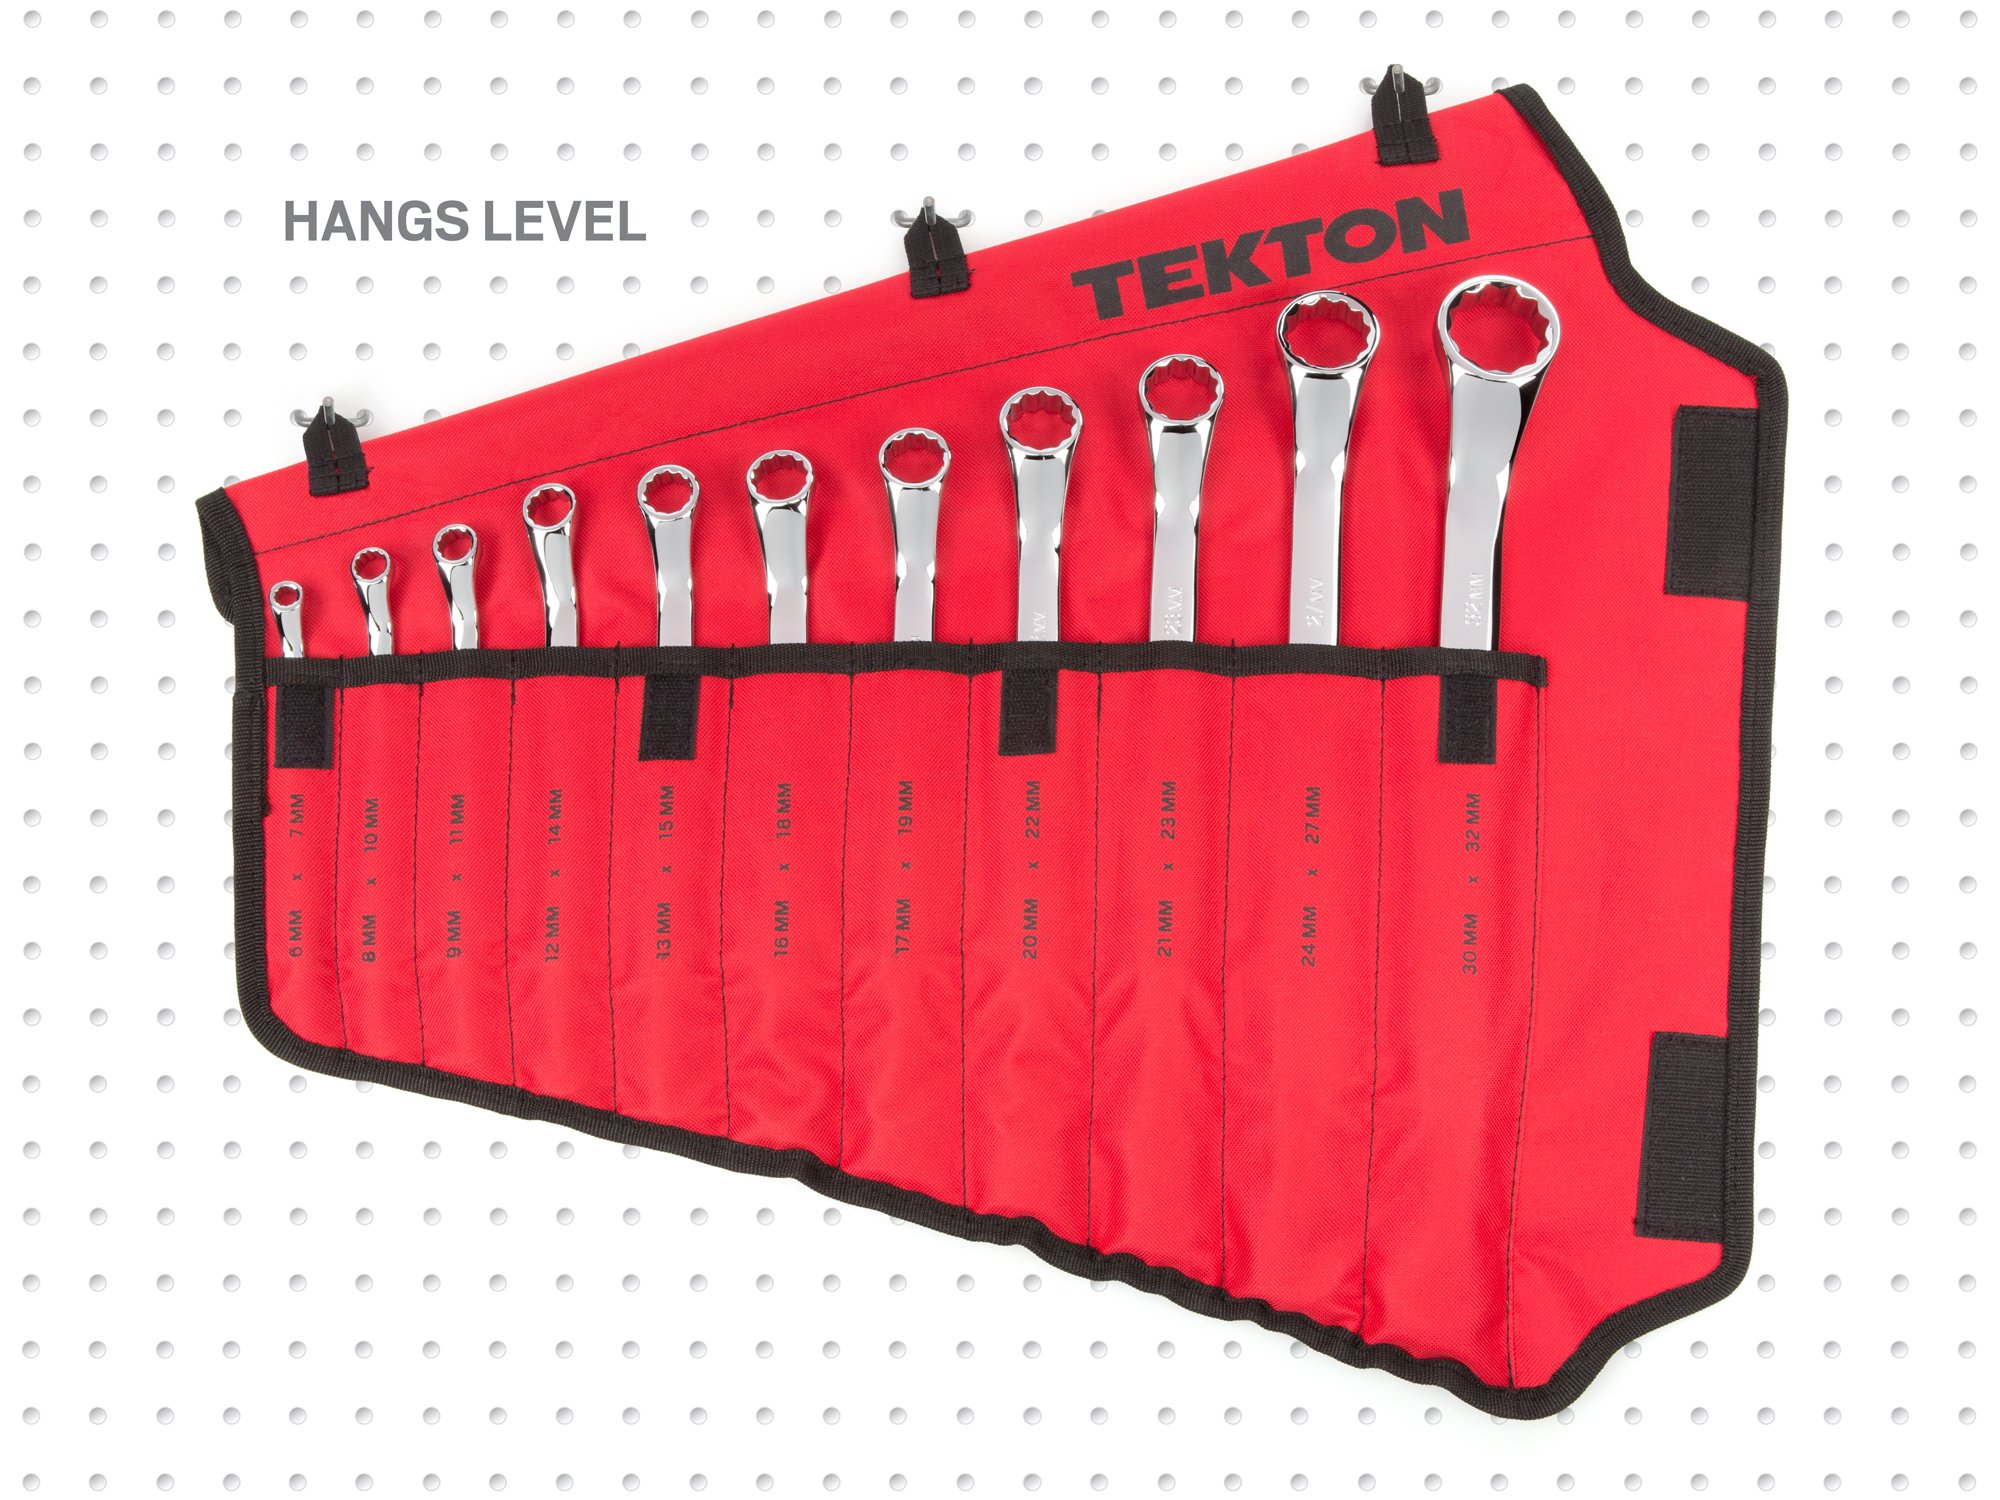 TEKTON 45-Degree Offset Box End Wrench Set with Roll-up Storage Pouch, Metric, 6 mm- 32 mm, 11-Piece | WBE24511 by TEKTON (Image #11)